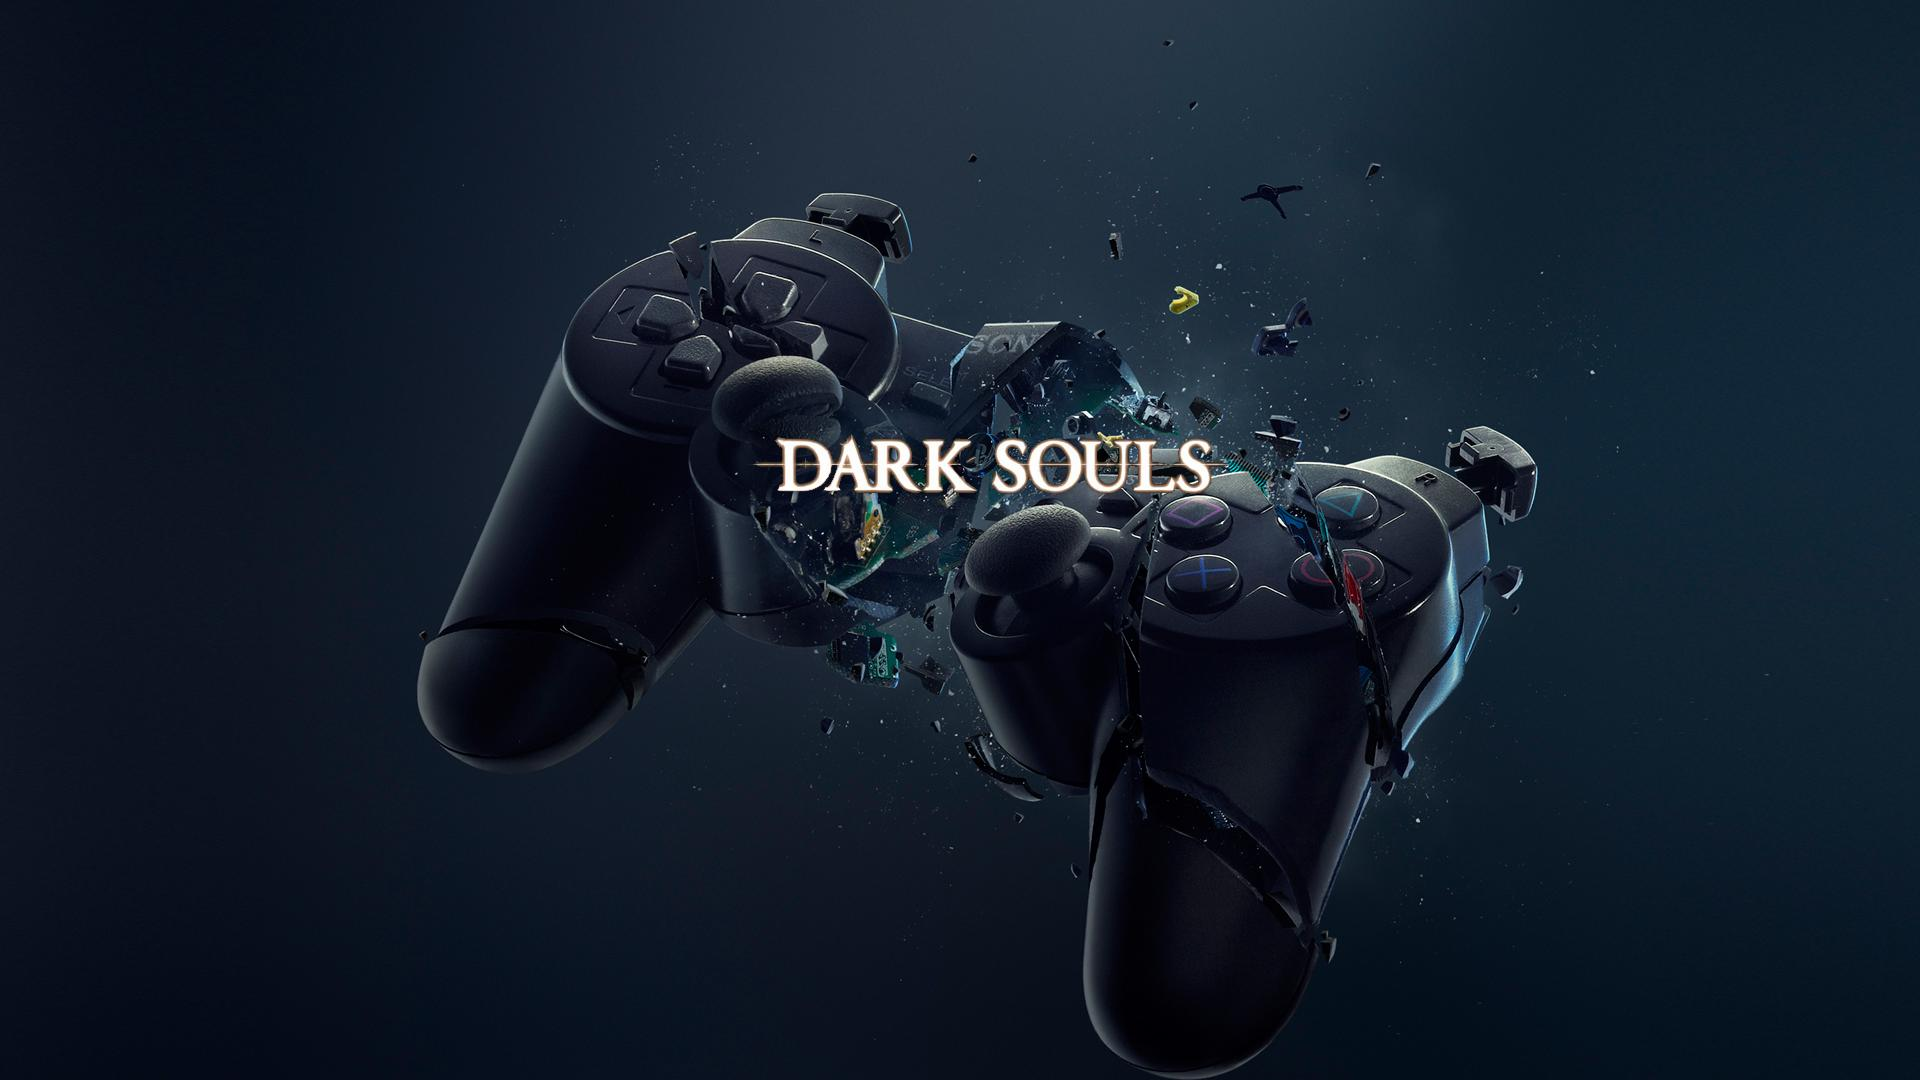 dark souls wallpaper breaking - photo #18